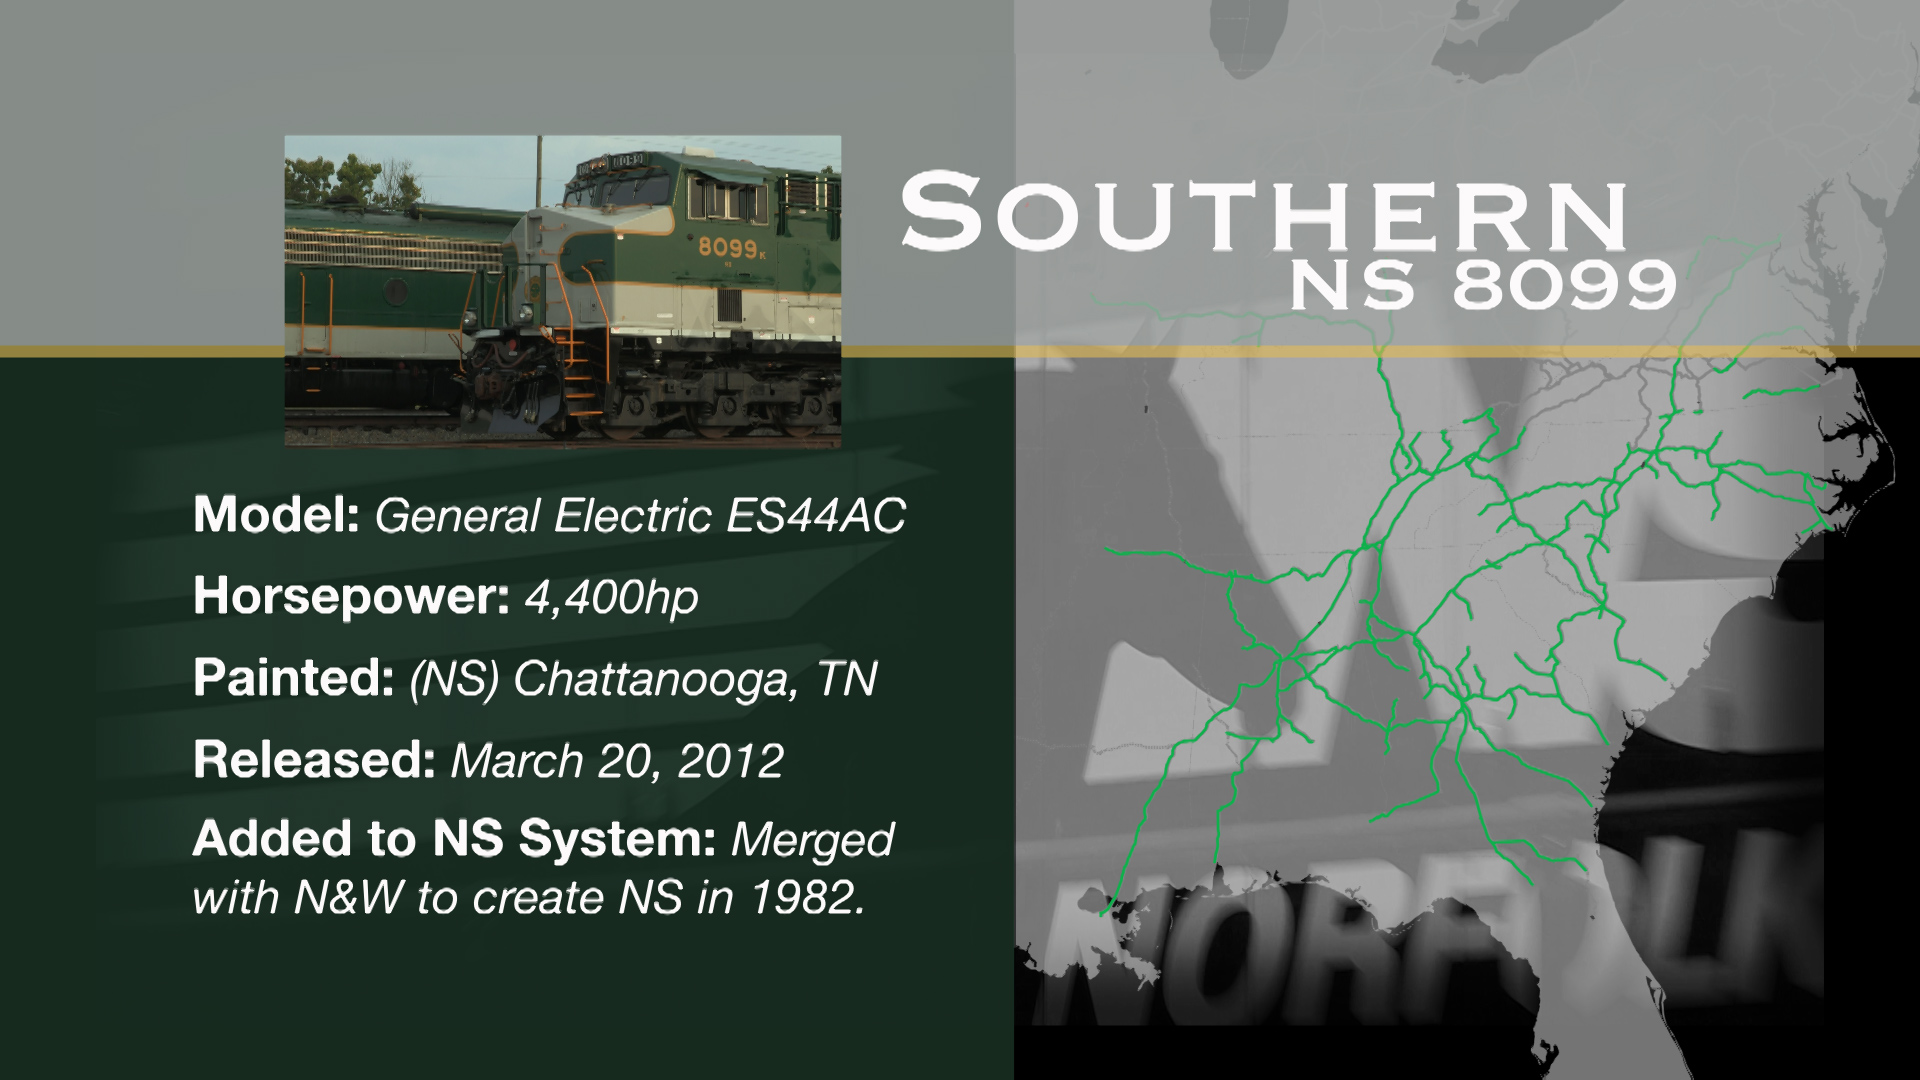 01 - Southern Graphic Intro.jpg